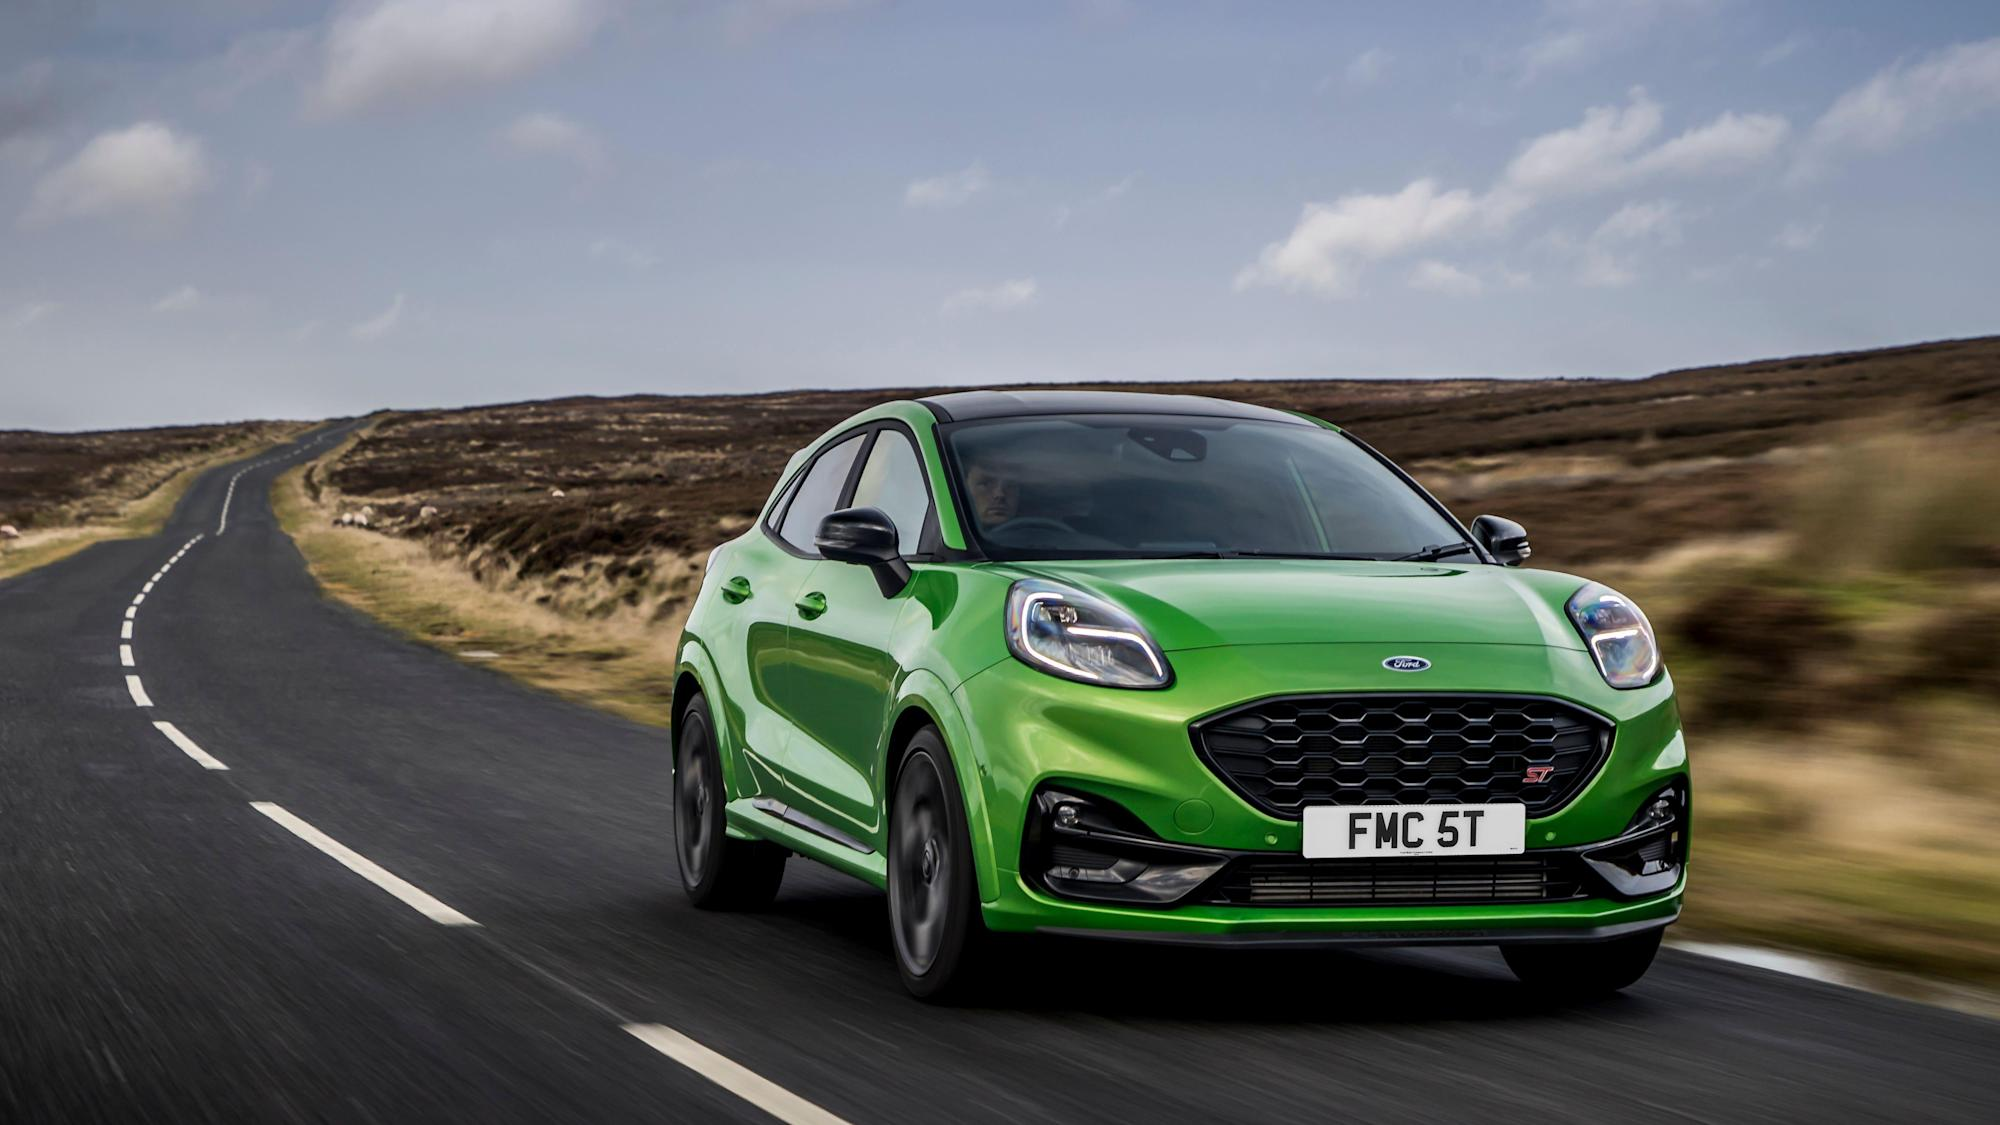 First Drive: Ford's Puma ST brings performance to the crossover segment